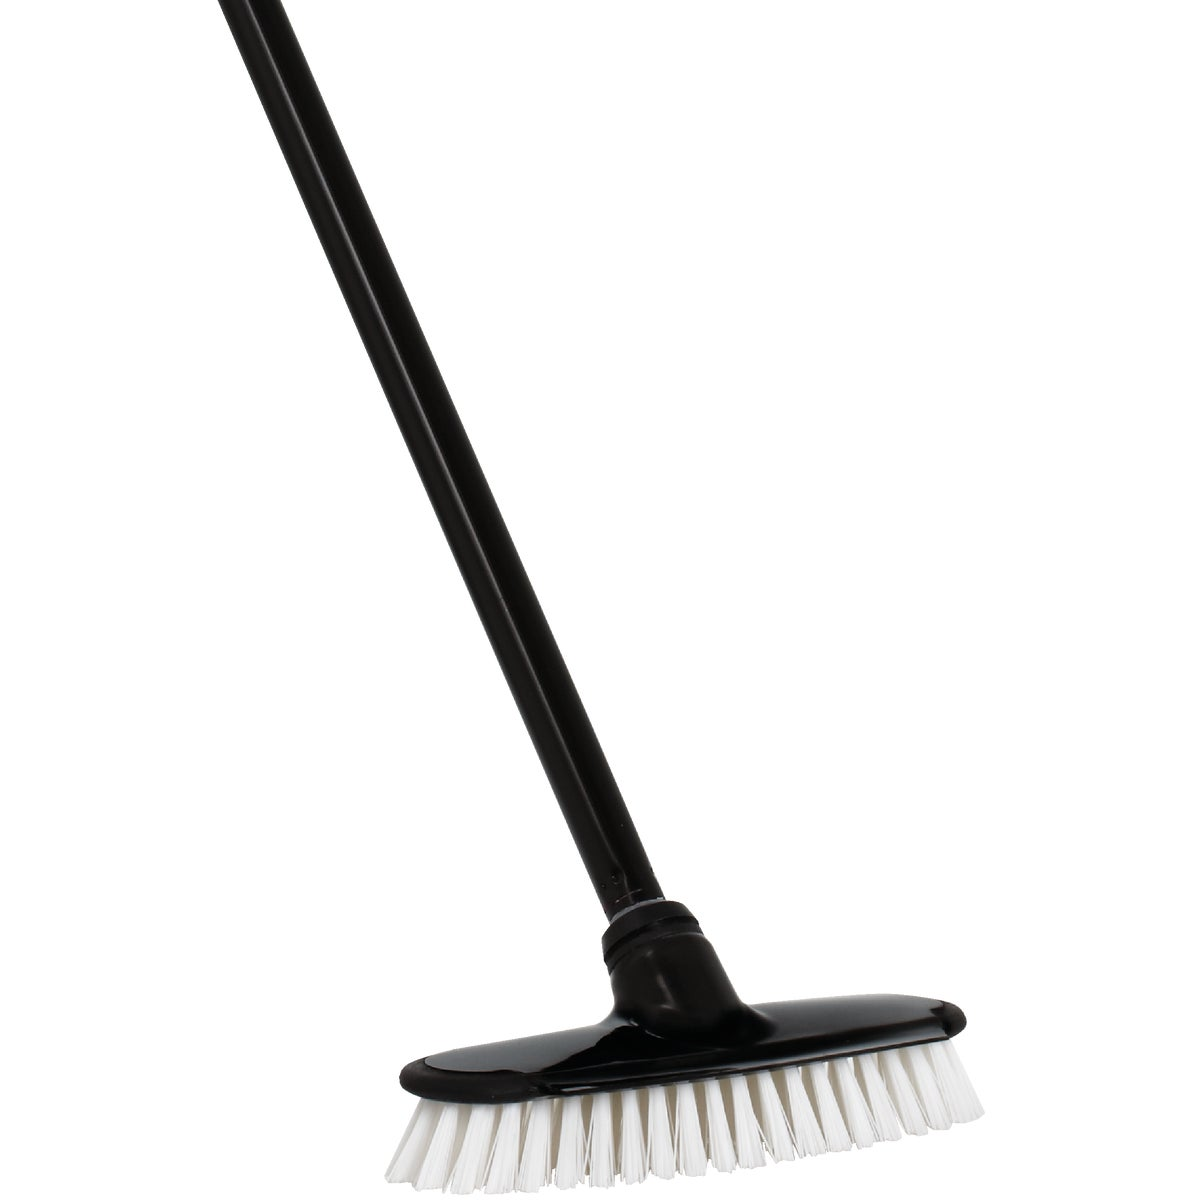 FLOOR SCRUB BRUSH - 150104 by F H P-lp